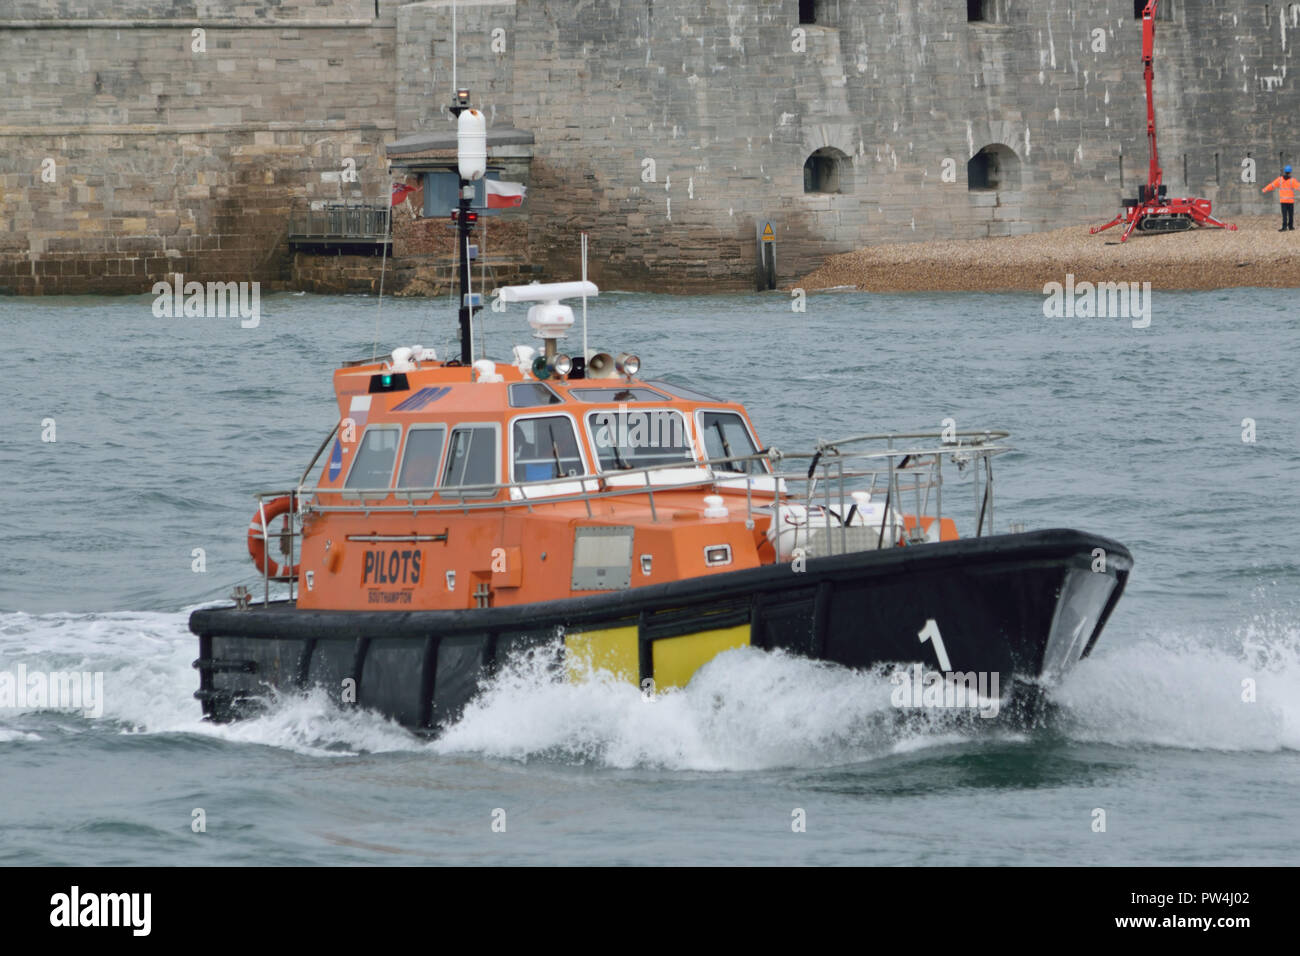 Portsmouth Harbour Pilot seen heading out in to the Solent - Stock Image